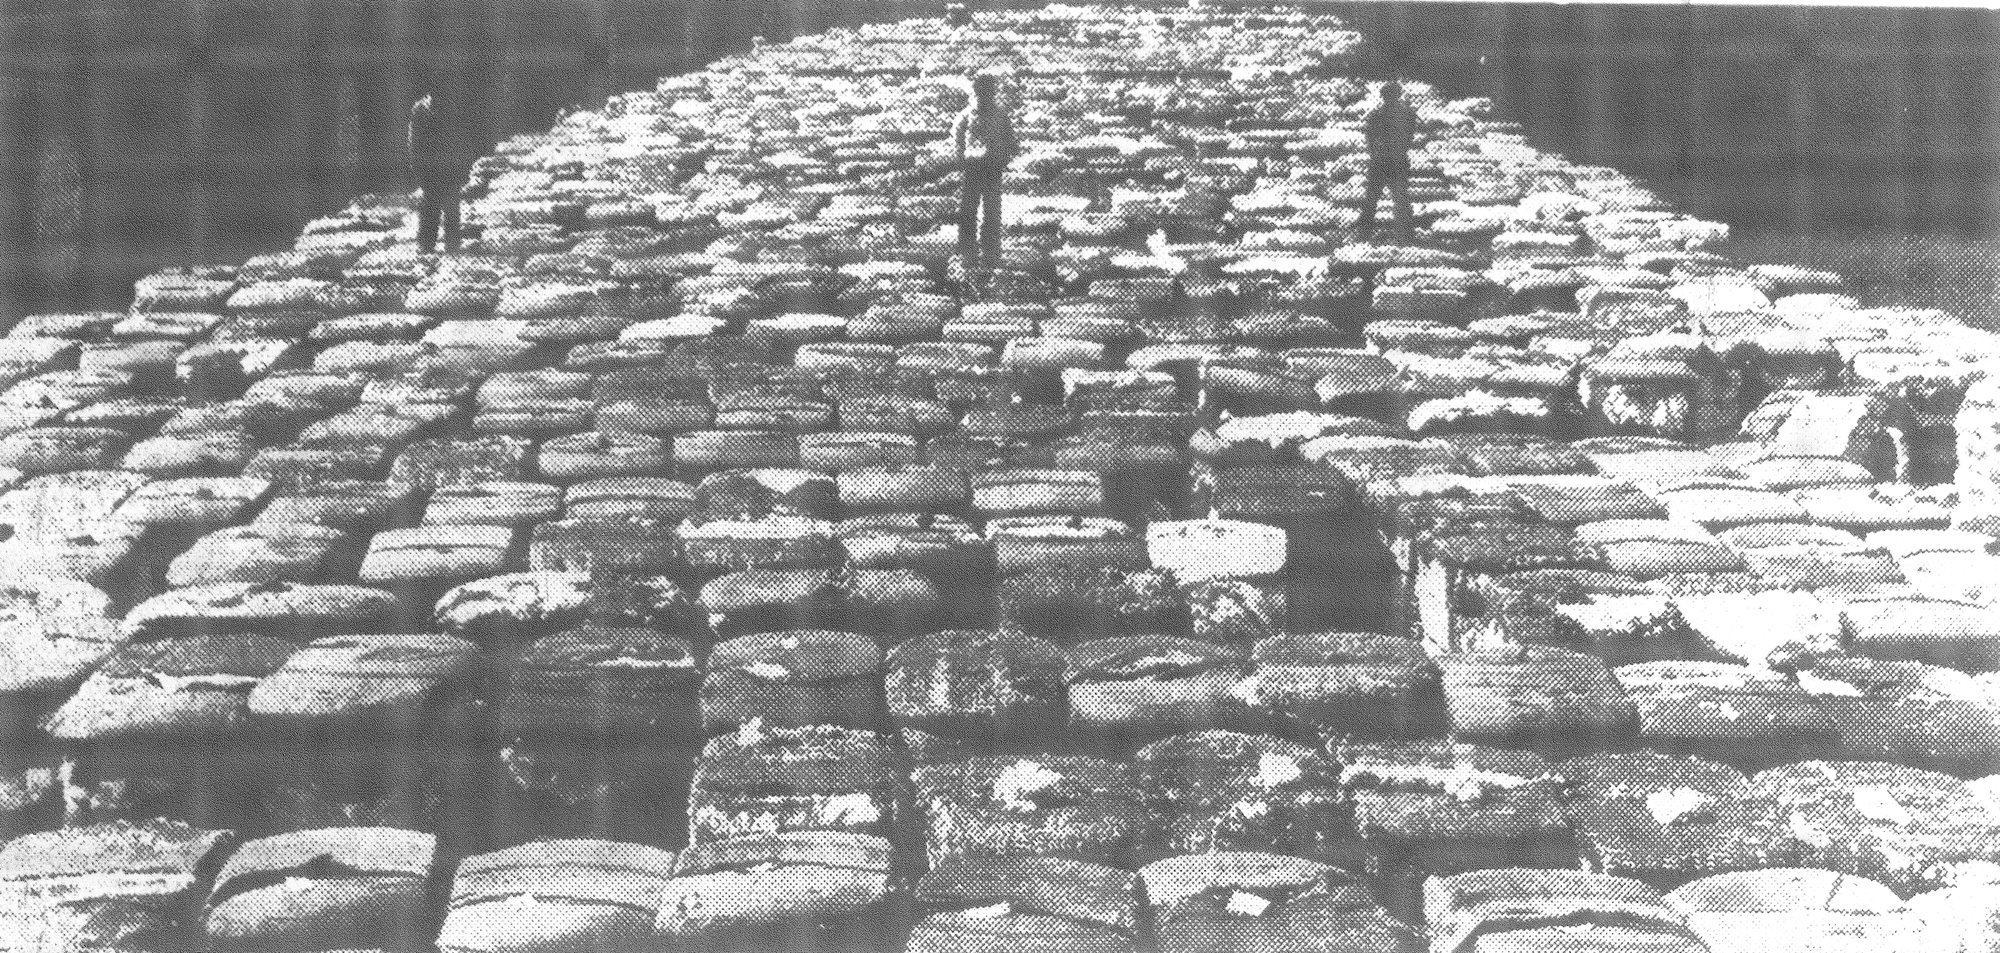 More than 3,000 bales of cotton are seen on the platform of Sumter Cotton Warehouse in 1939, waiting to be shipped by rail or truck. Many more thousands of bales were under the warehouse sheds.